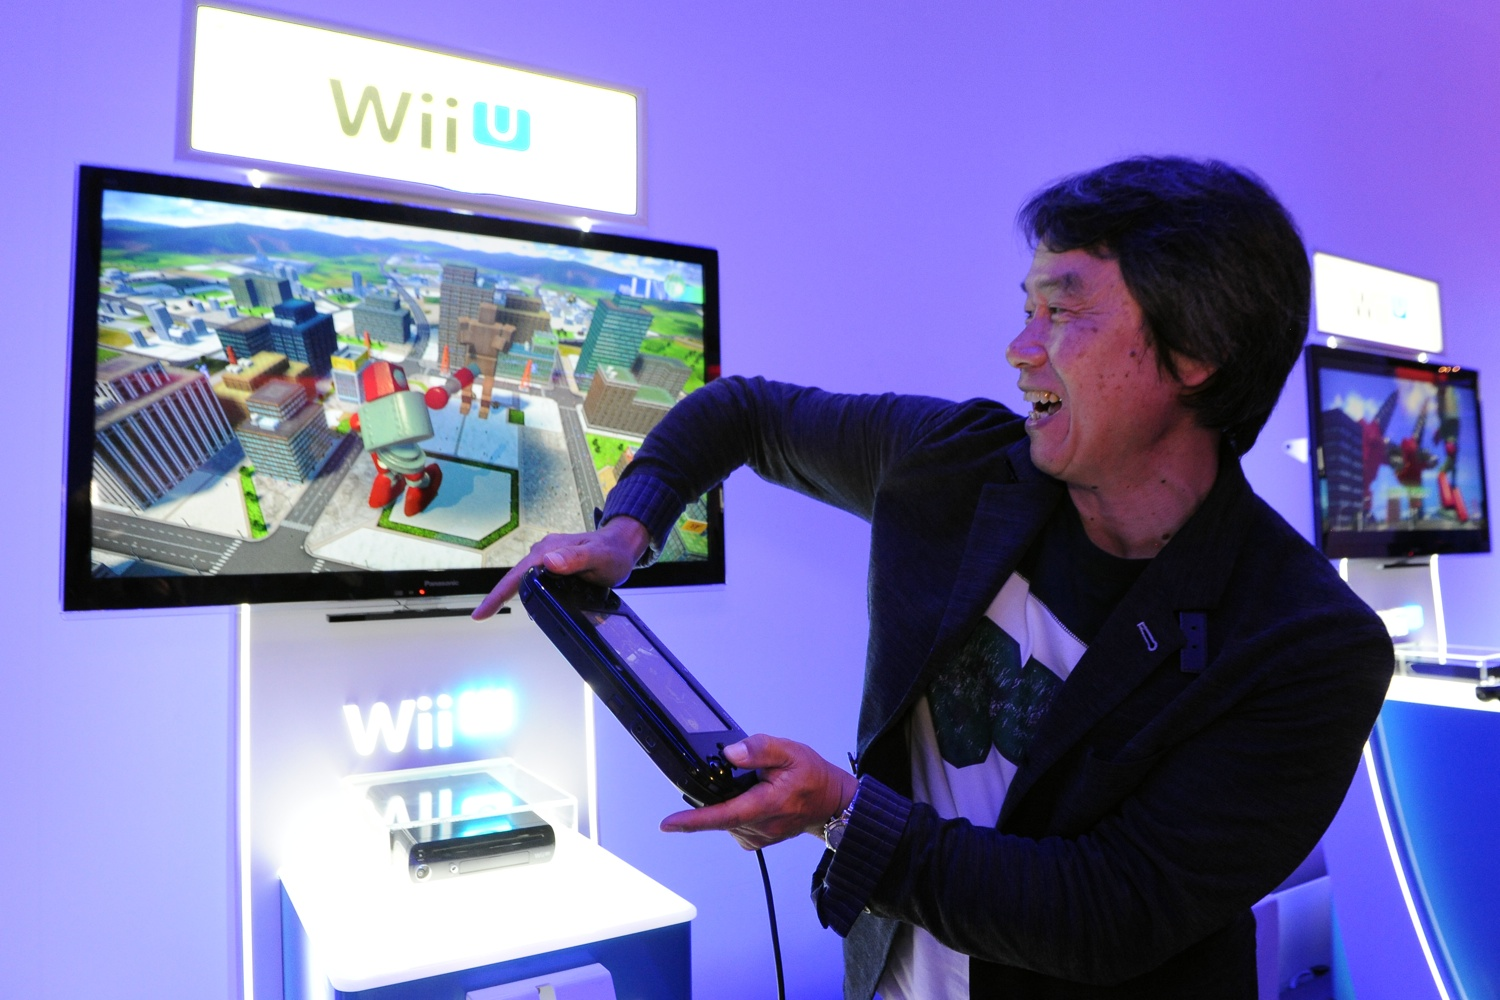 Shigeru Miyamoto plays Project Giant Robot, using the GamePad's motion control sensors to move the robot's torso.